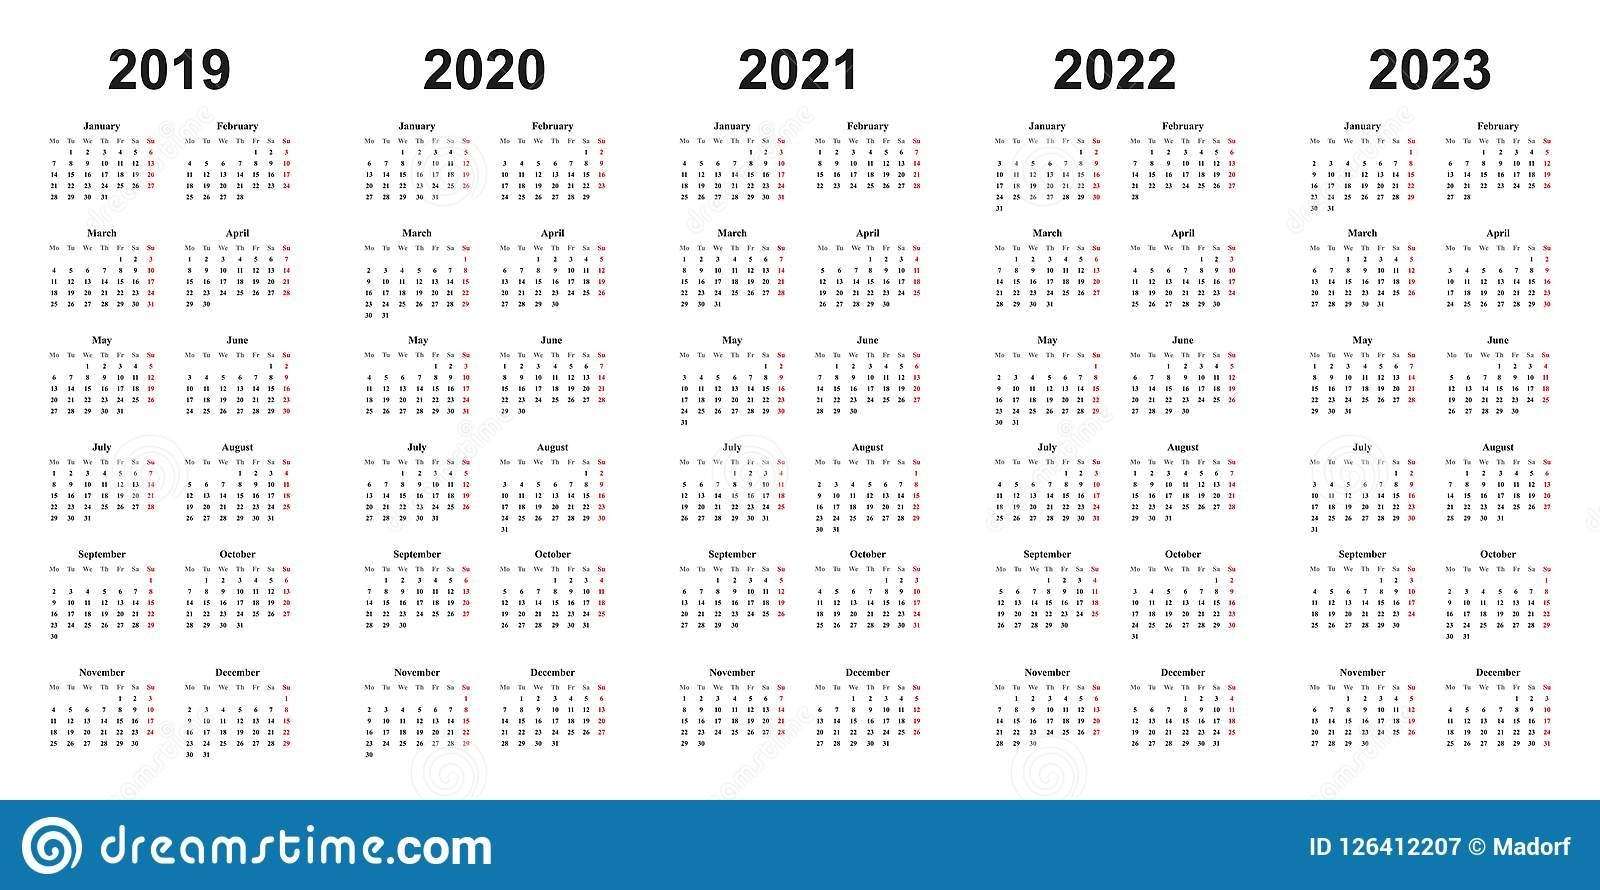 Simple Design Calendar With Years 2019, 2020, 2021, 2022, 2023 Stock in 2020 To 2023 Calendars